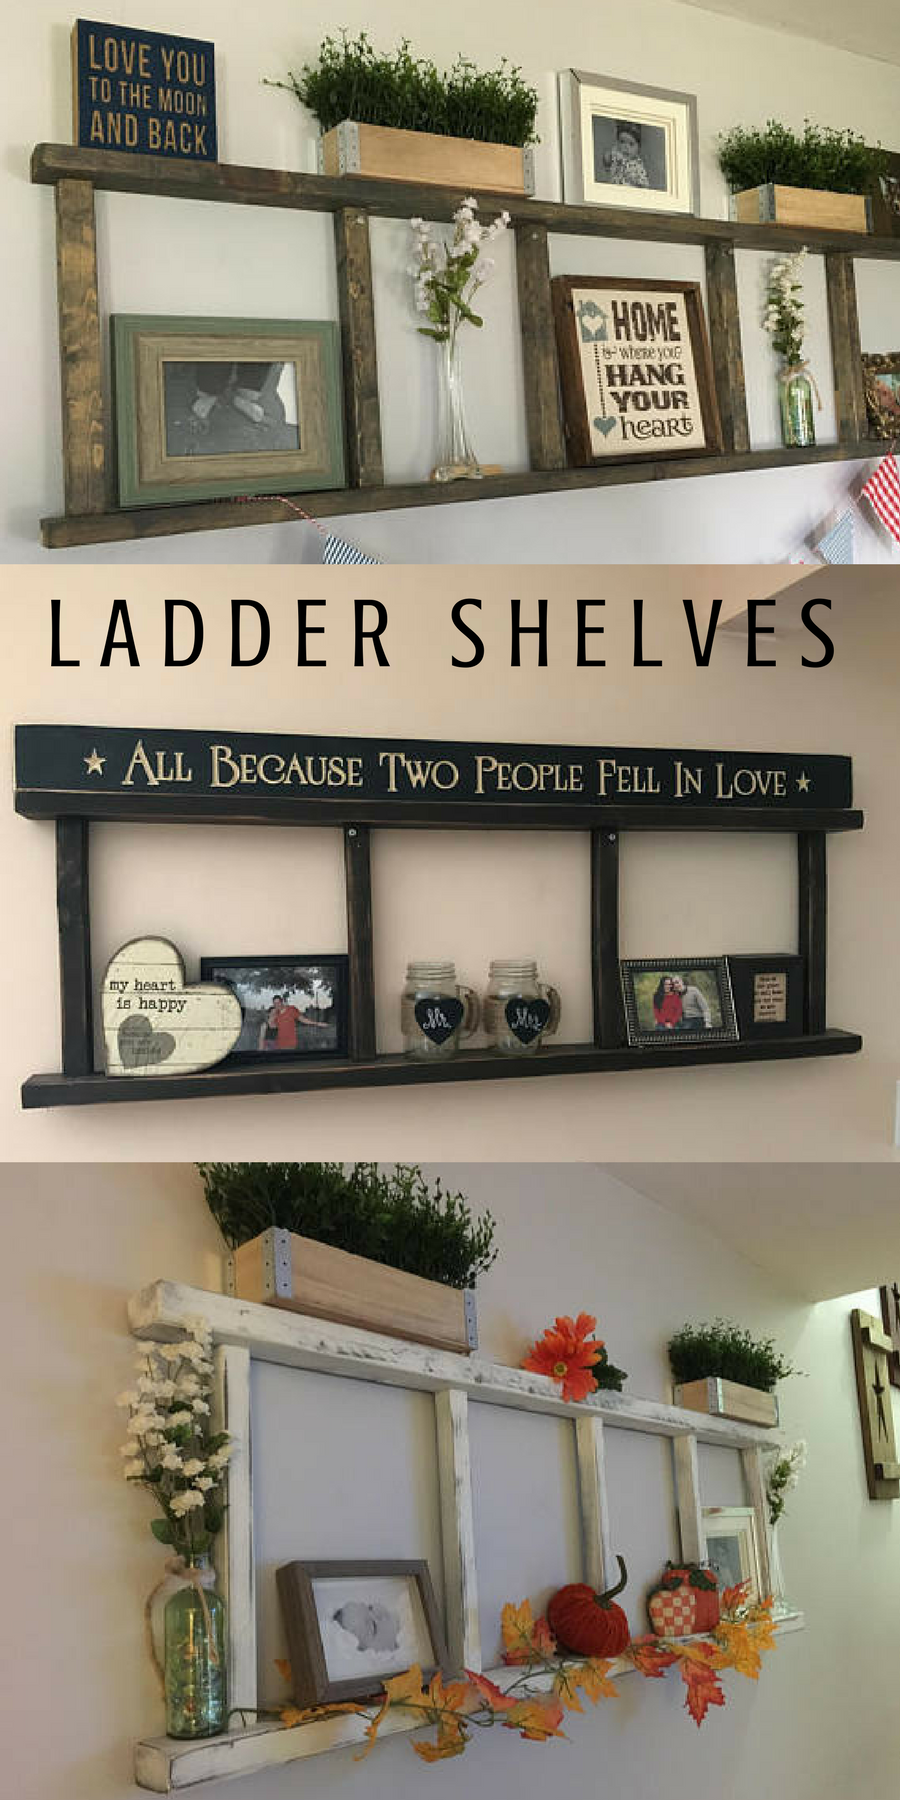 Ladder shelves so perfect for farmhouse rustic primitive style